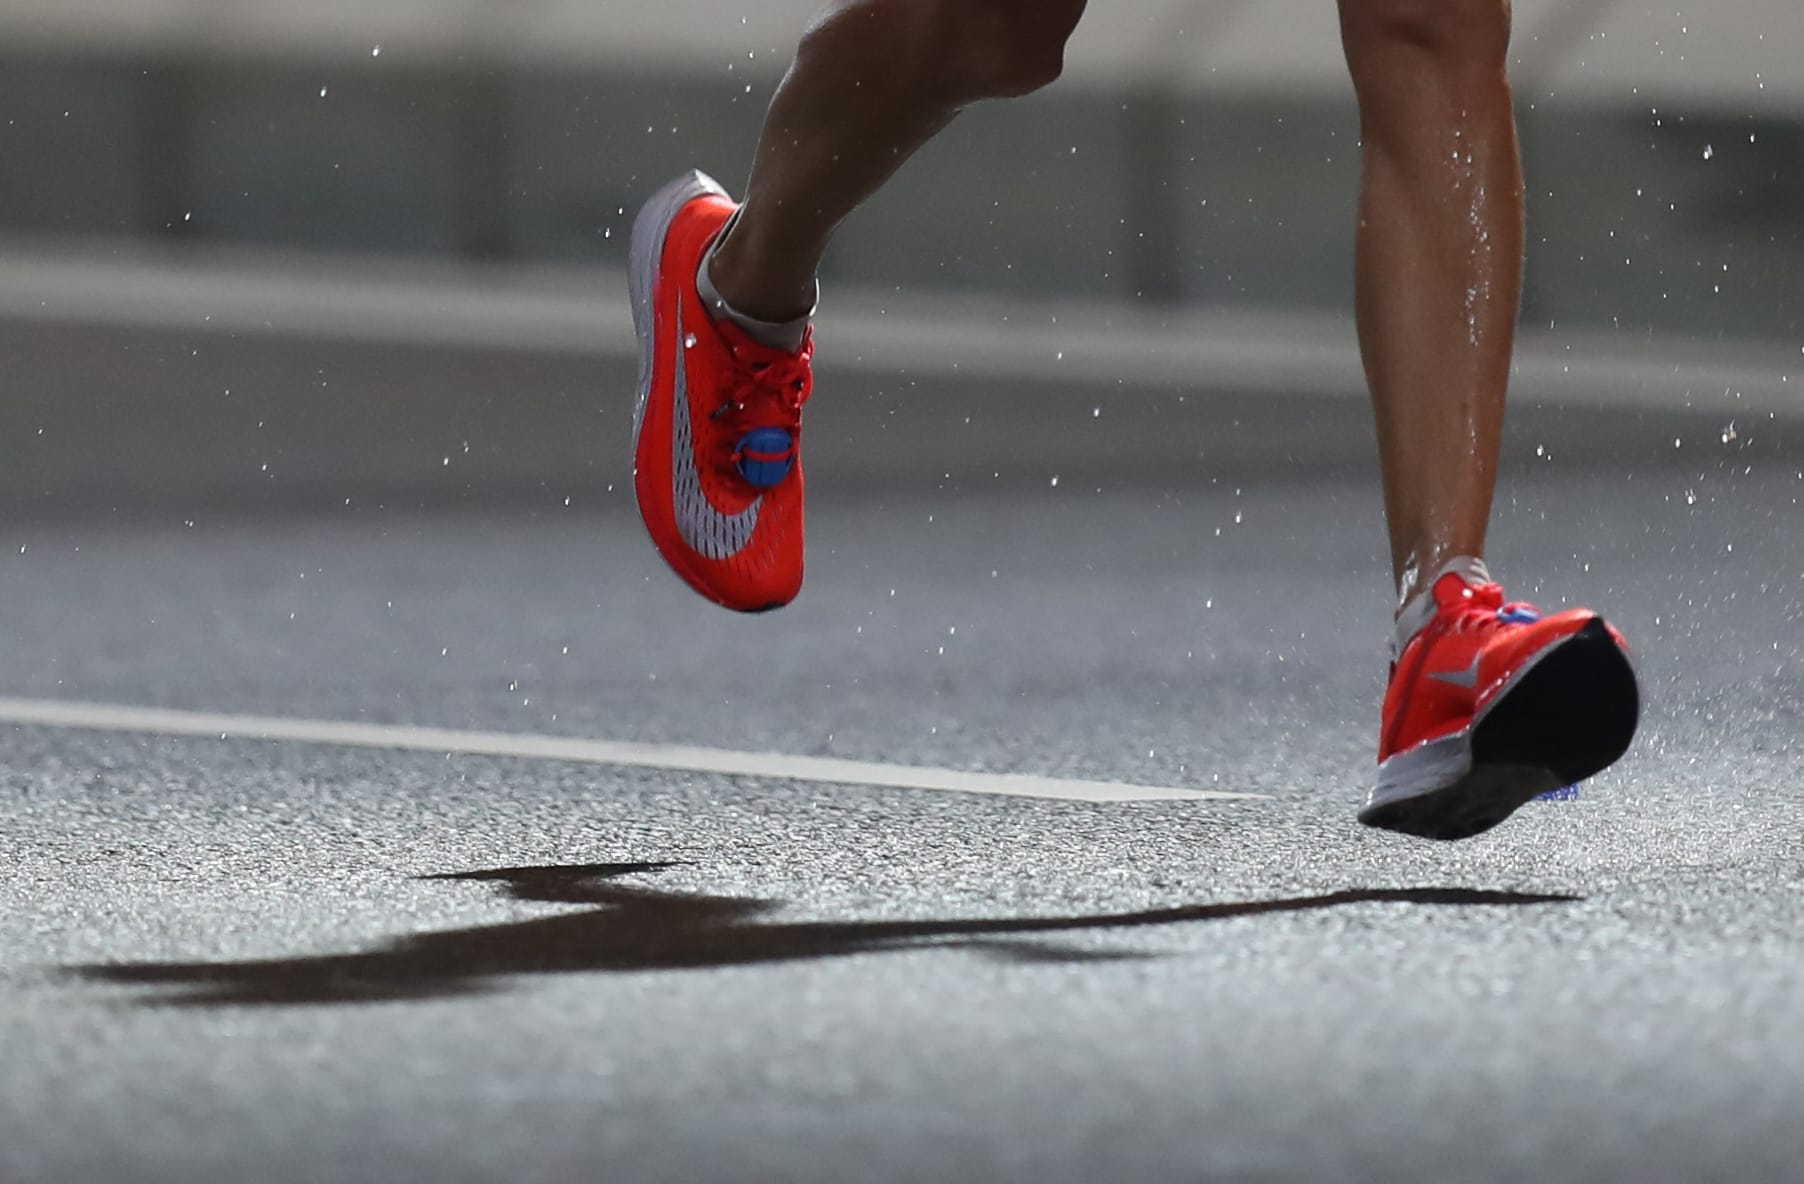 Do your running shoes pass the test?